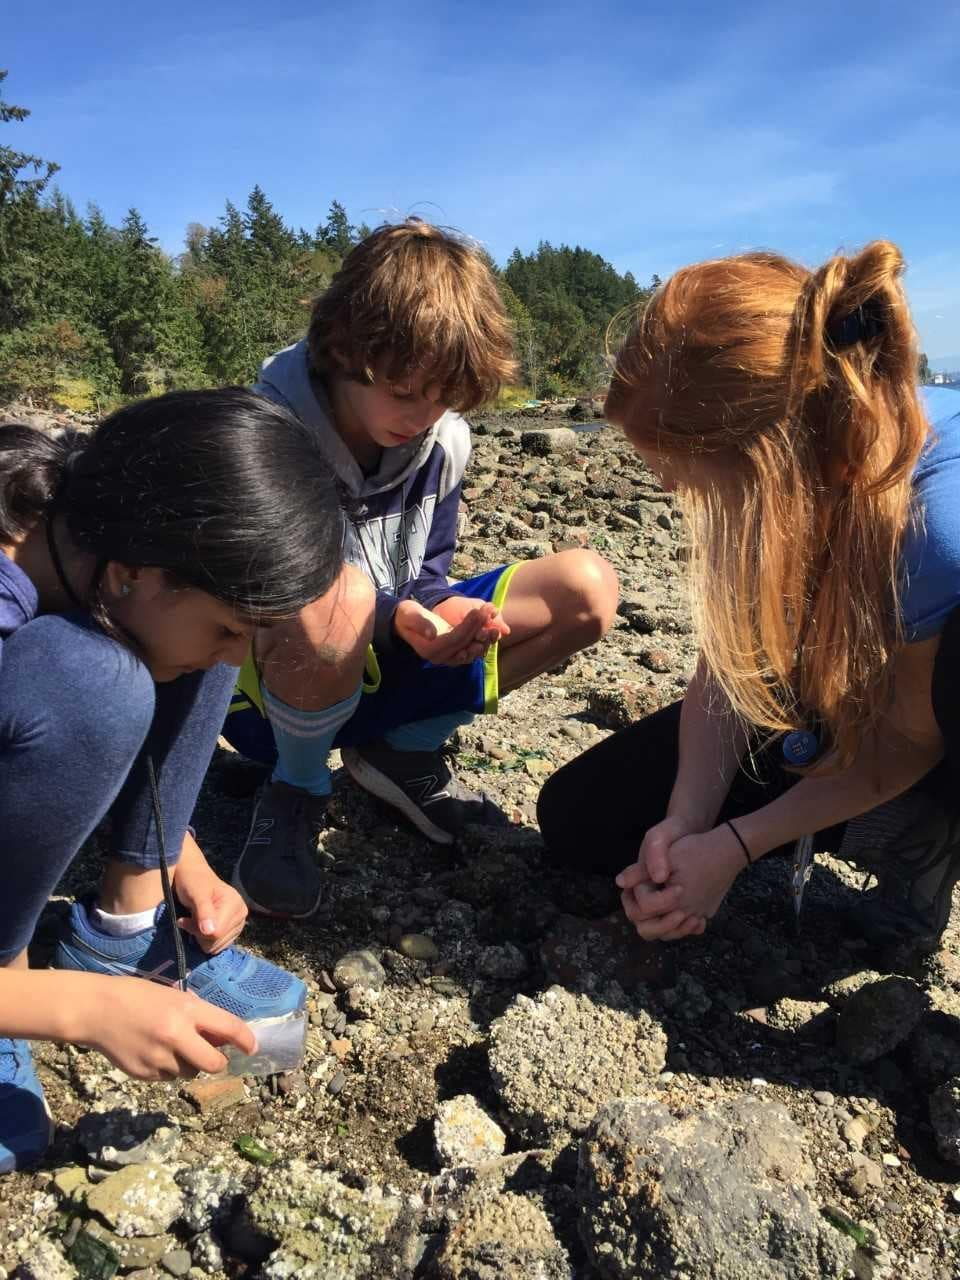 Hannah Levy and School Overnight Program students explore the beach.